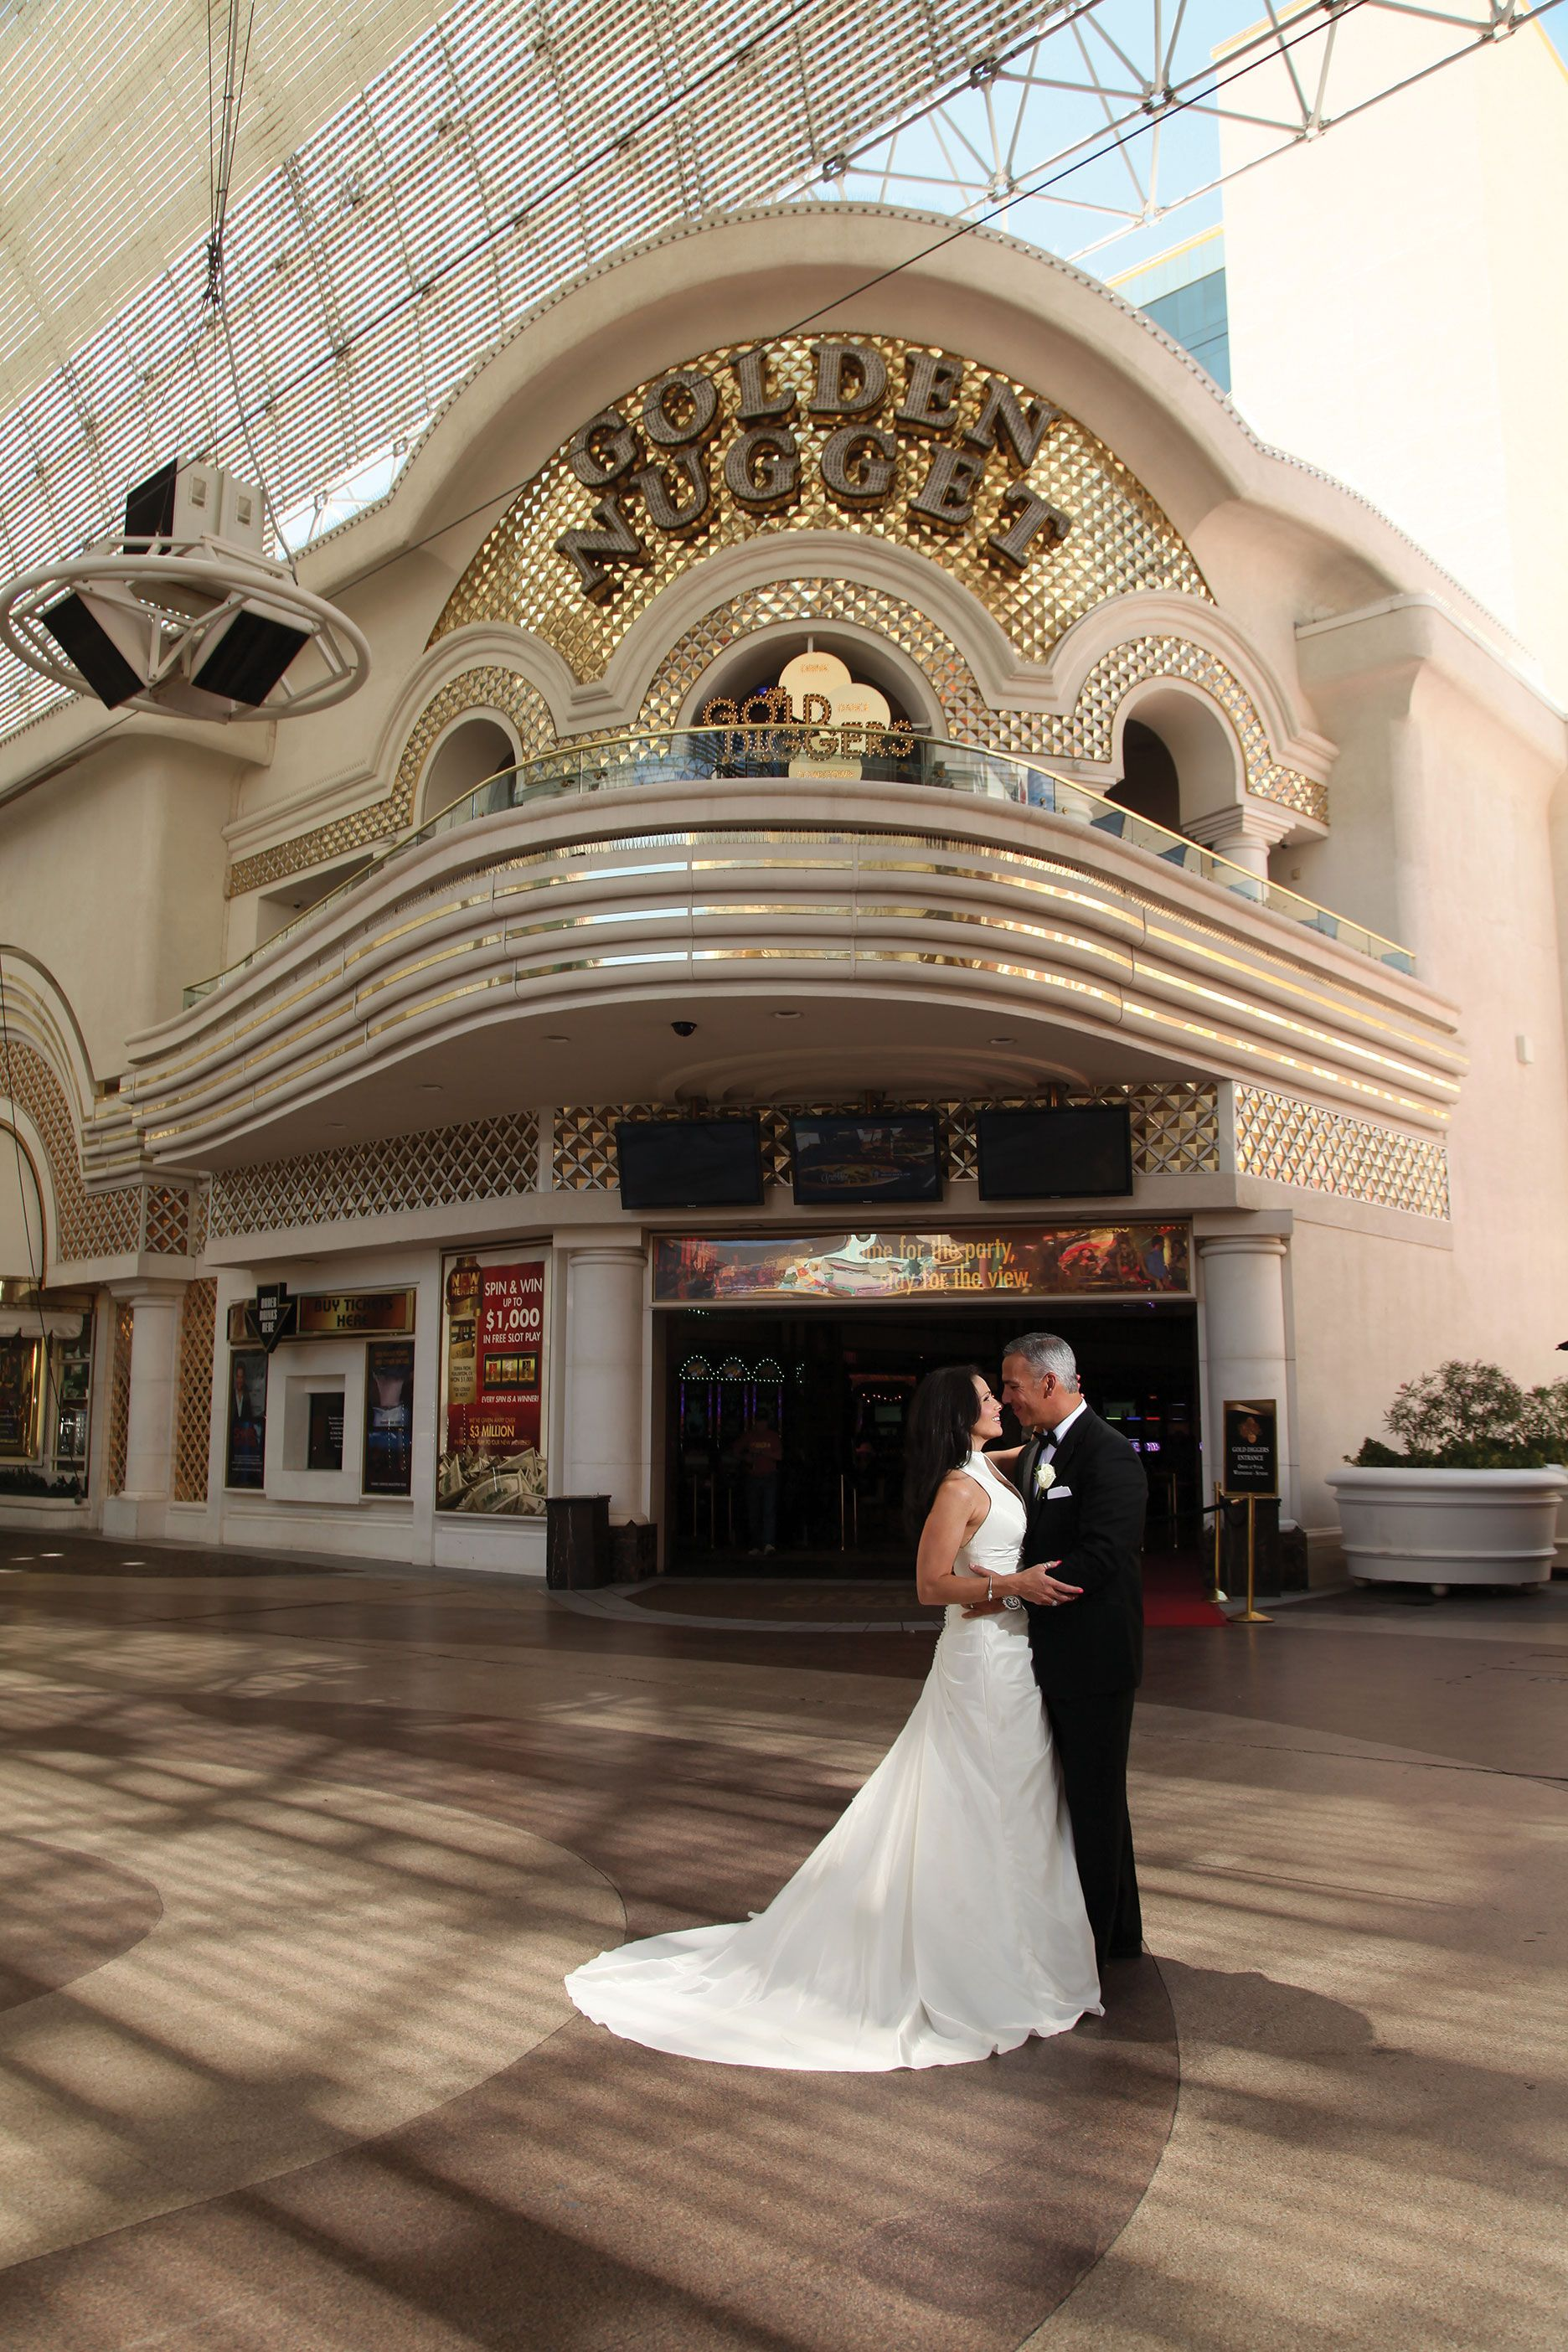 Come To Golden Nugget Las Vegas For Hotel Wedding Packages And Venues